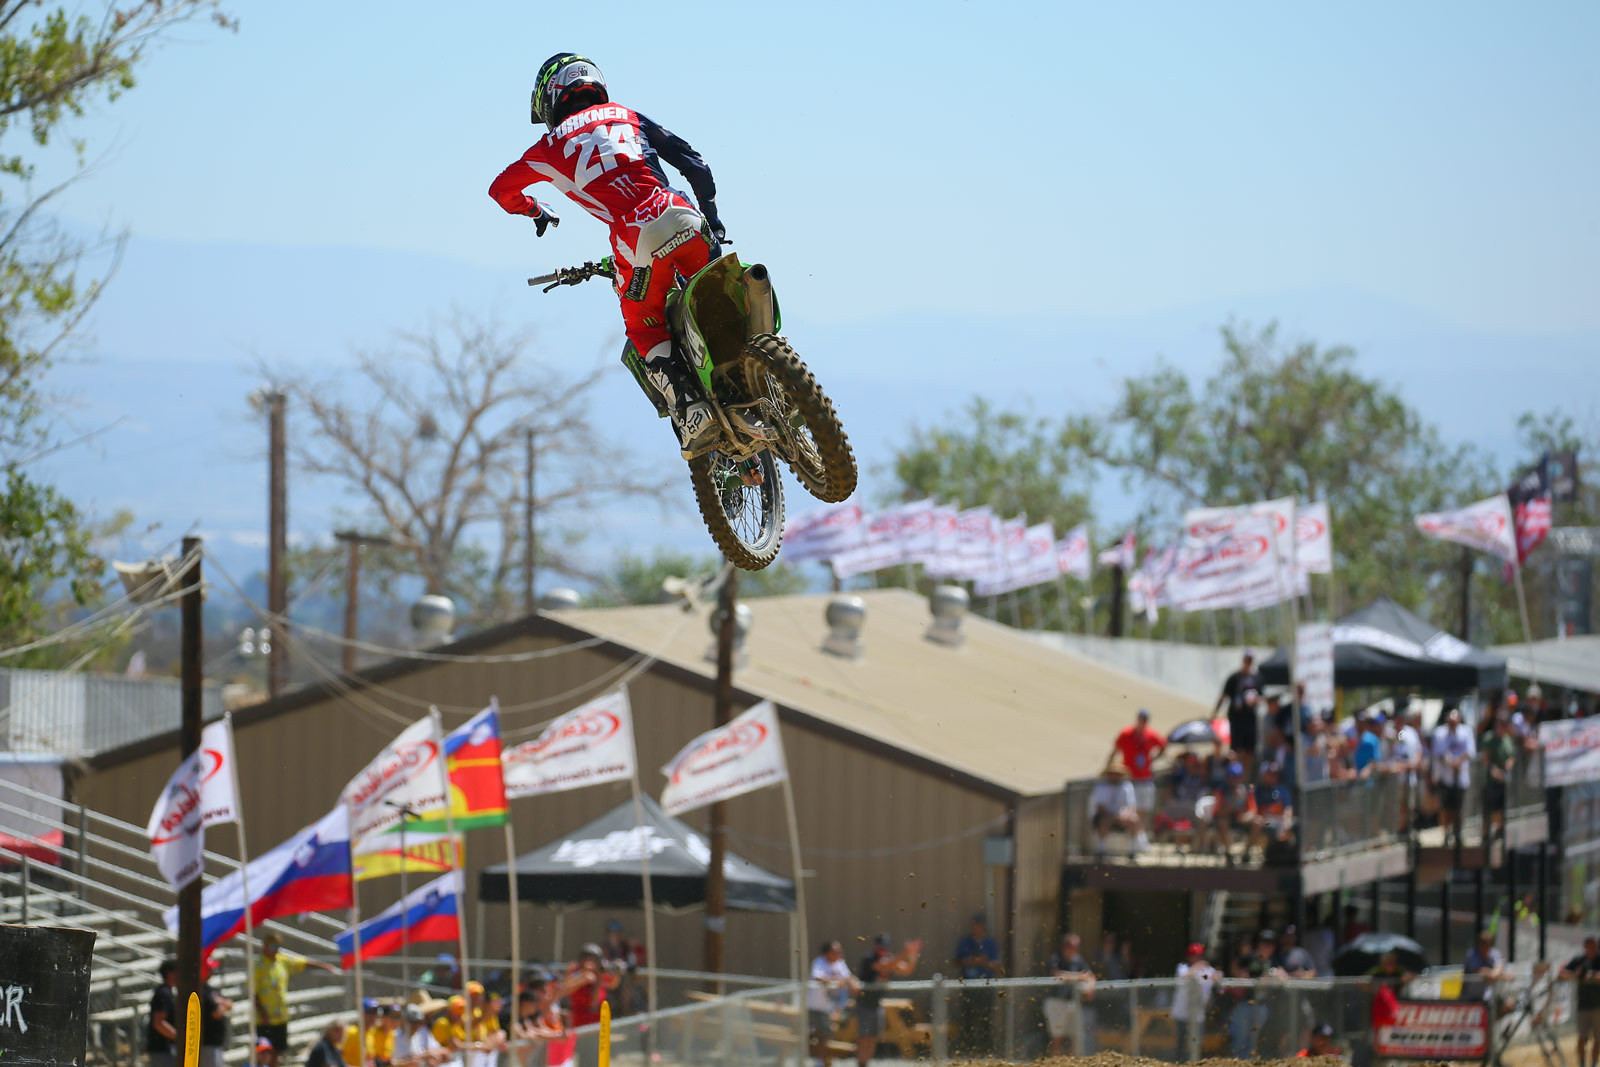 Austin Forkner - Photo Blast: MXGP of the USA - Motocross Pictures - Vital MX